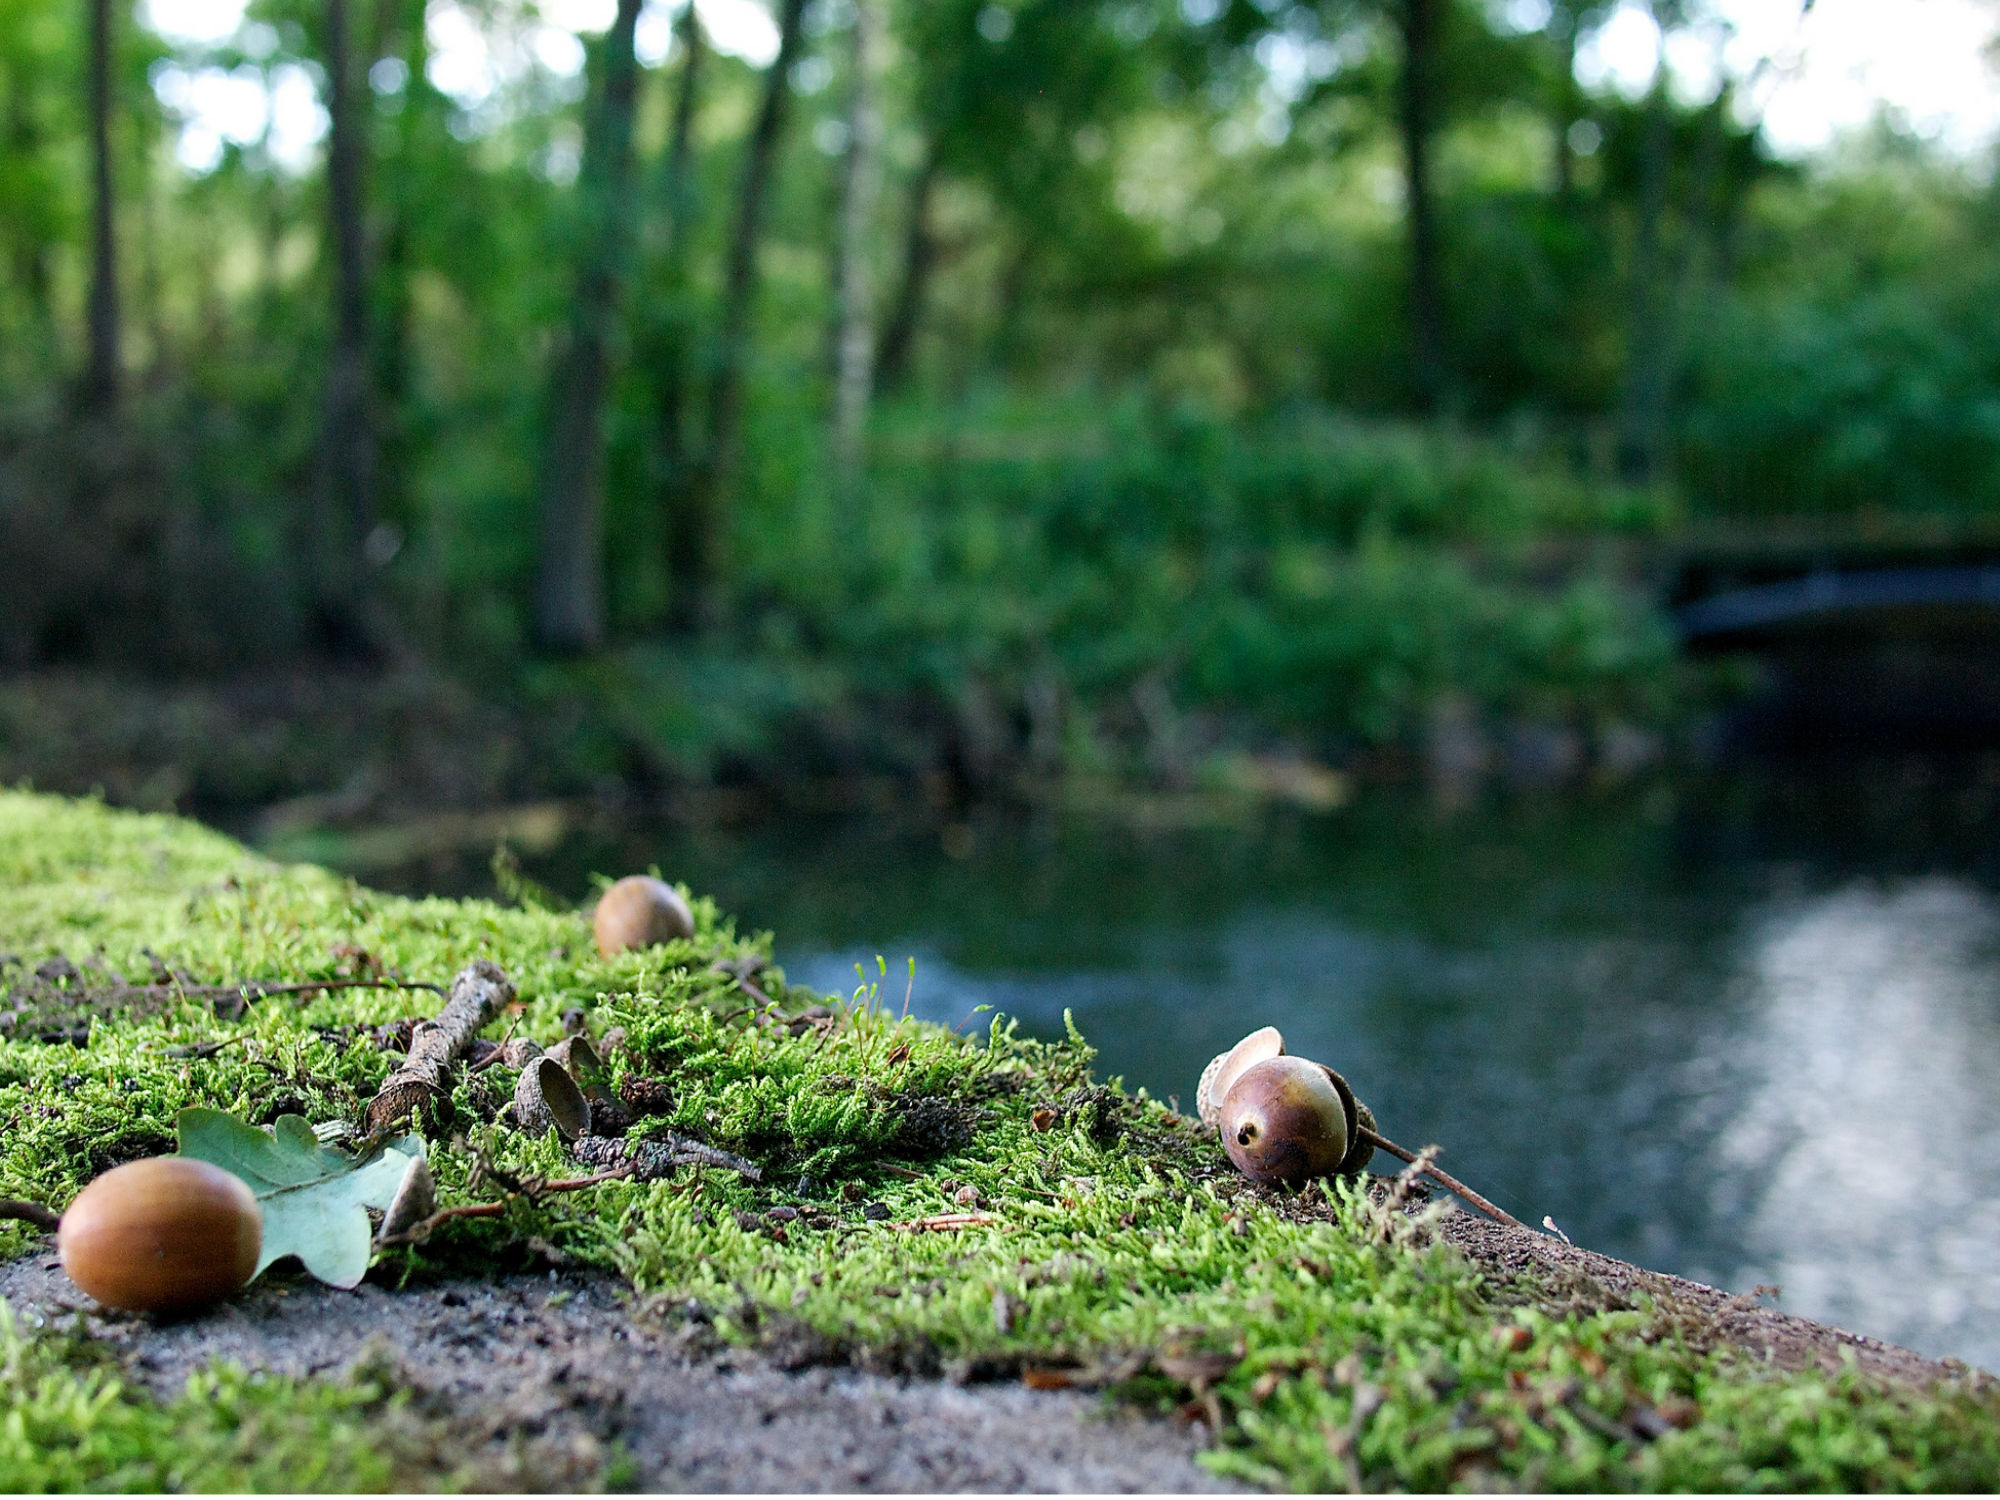 photo by andre hofmeister of acorn, moss, and creek